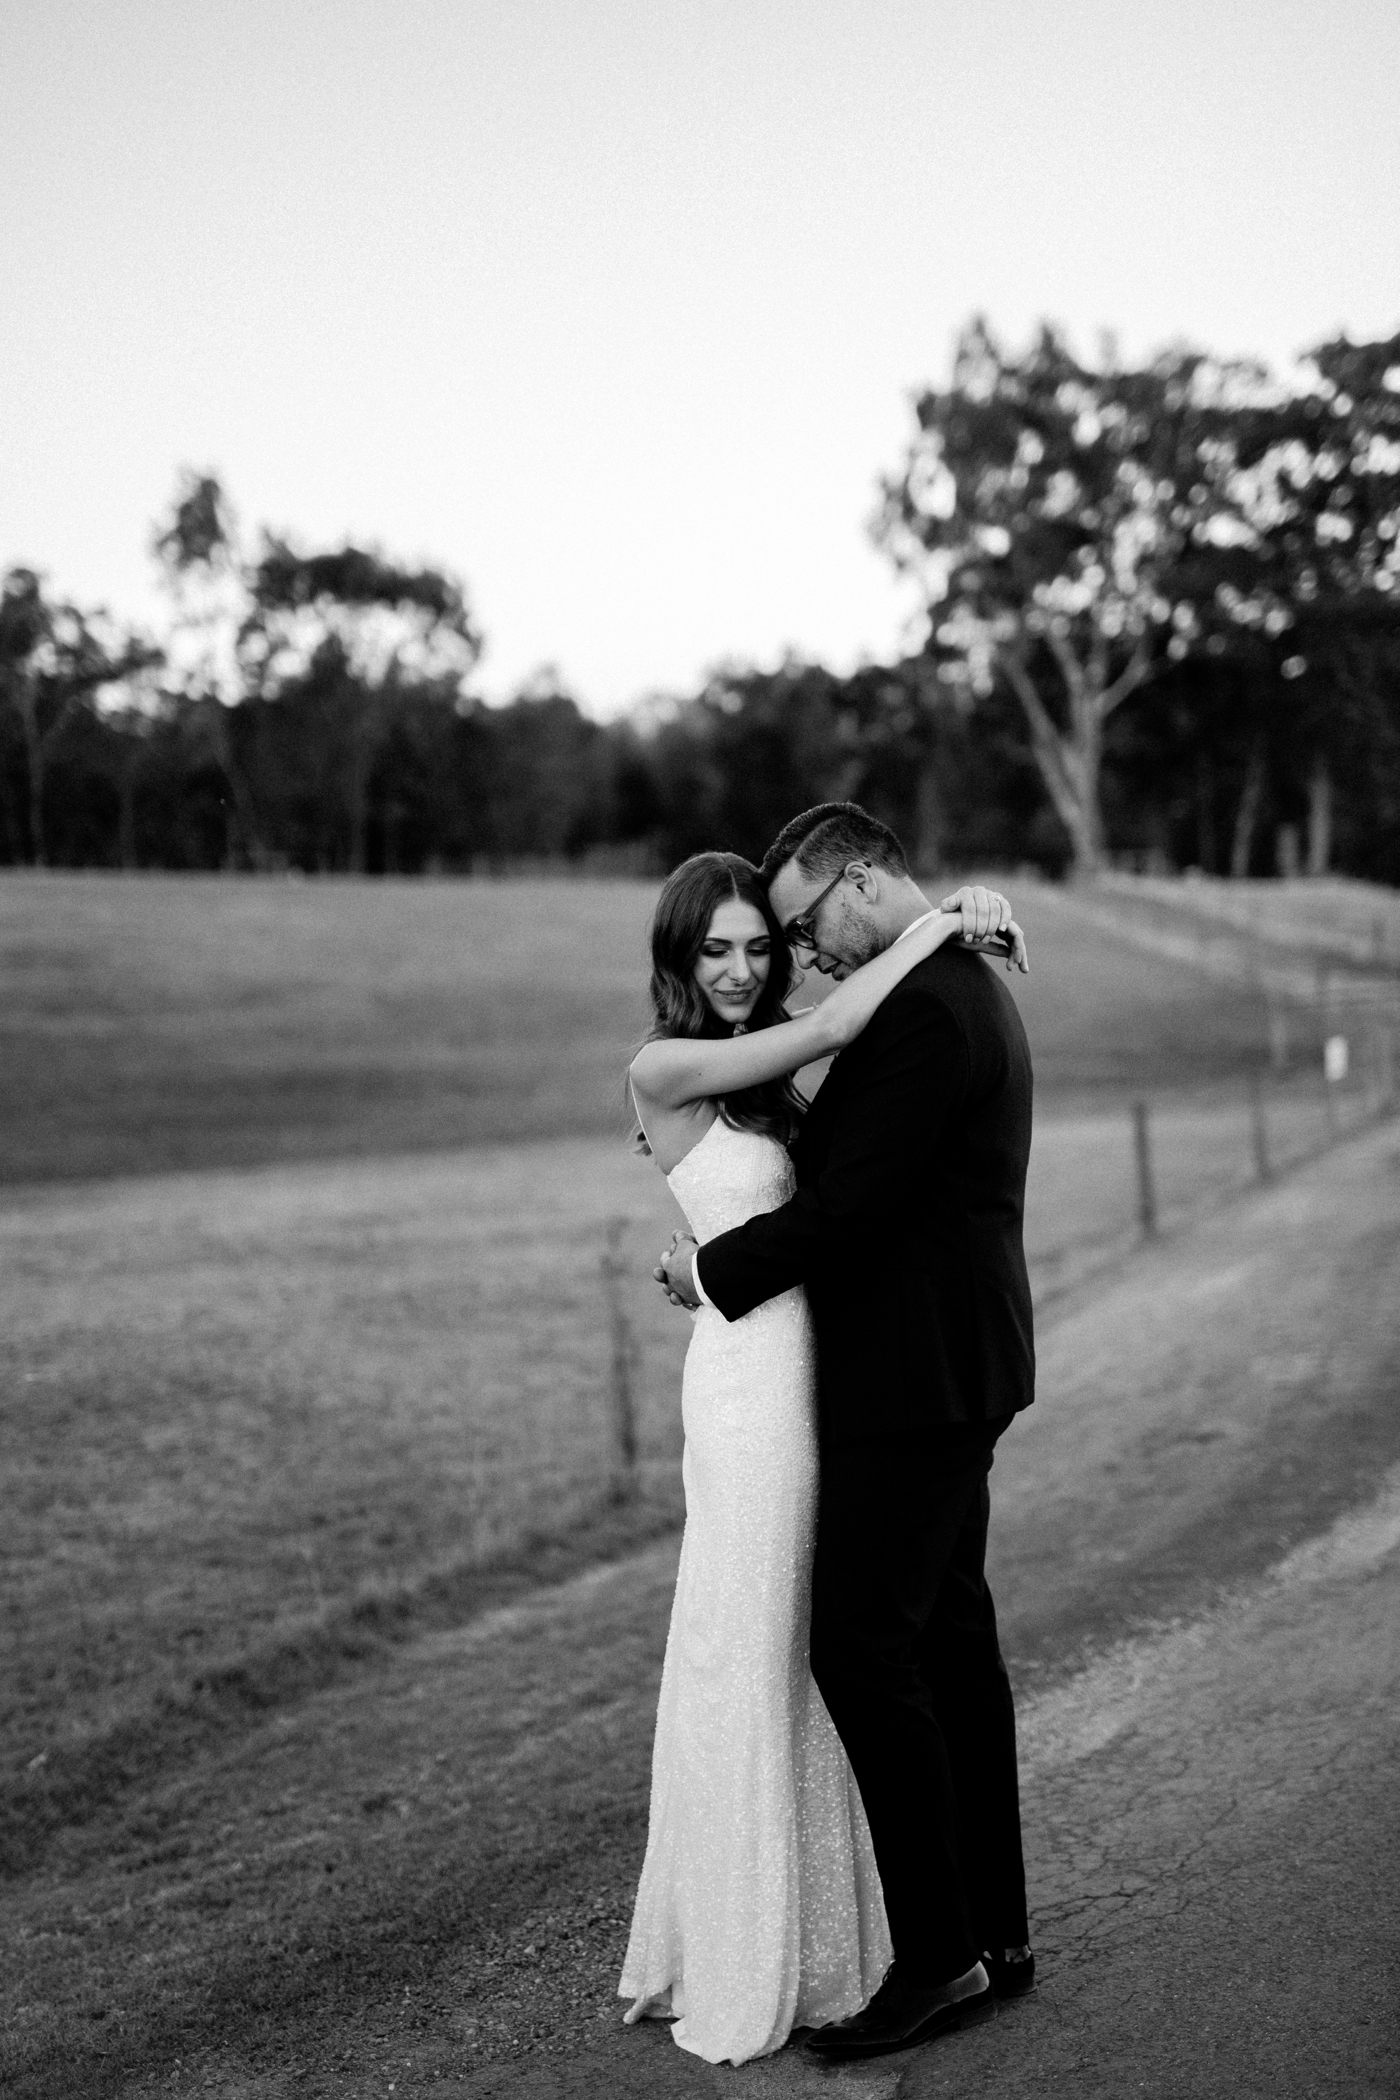 Steph & Quinn - Natural Wedding Photographer in Adelaide - Beautiful Wedding Photography - Simple, modern and natural wedding photographer - Katherine Schultz - www.katherineschultzphotography.com_0052.jpg